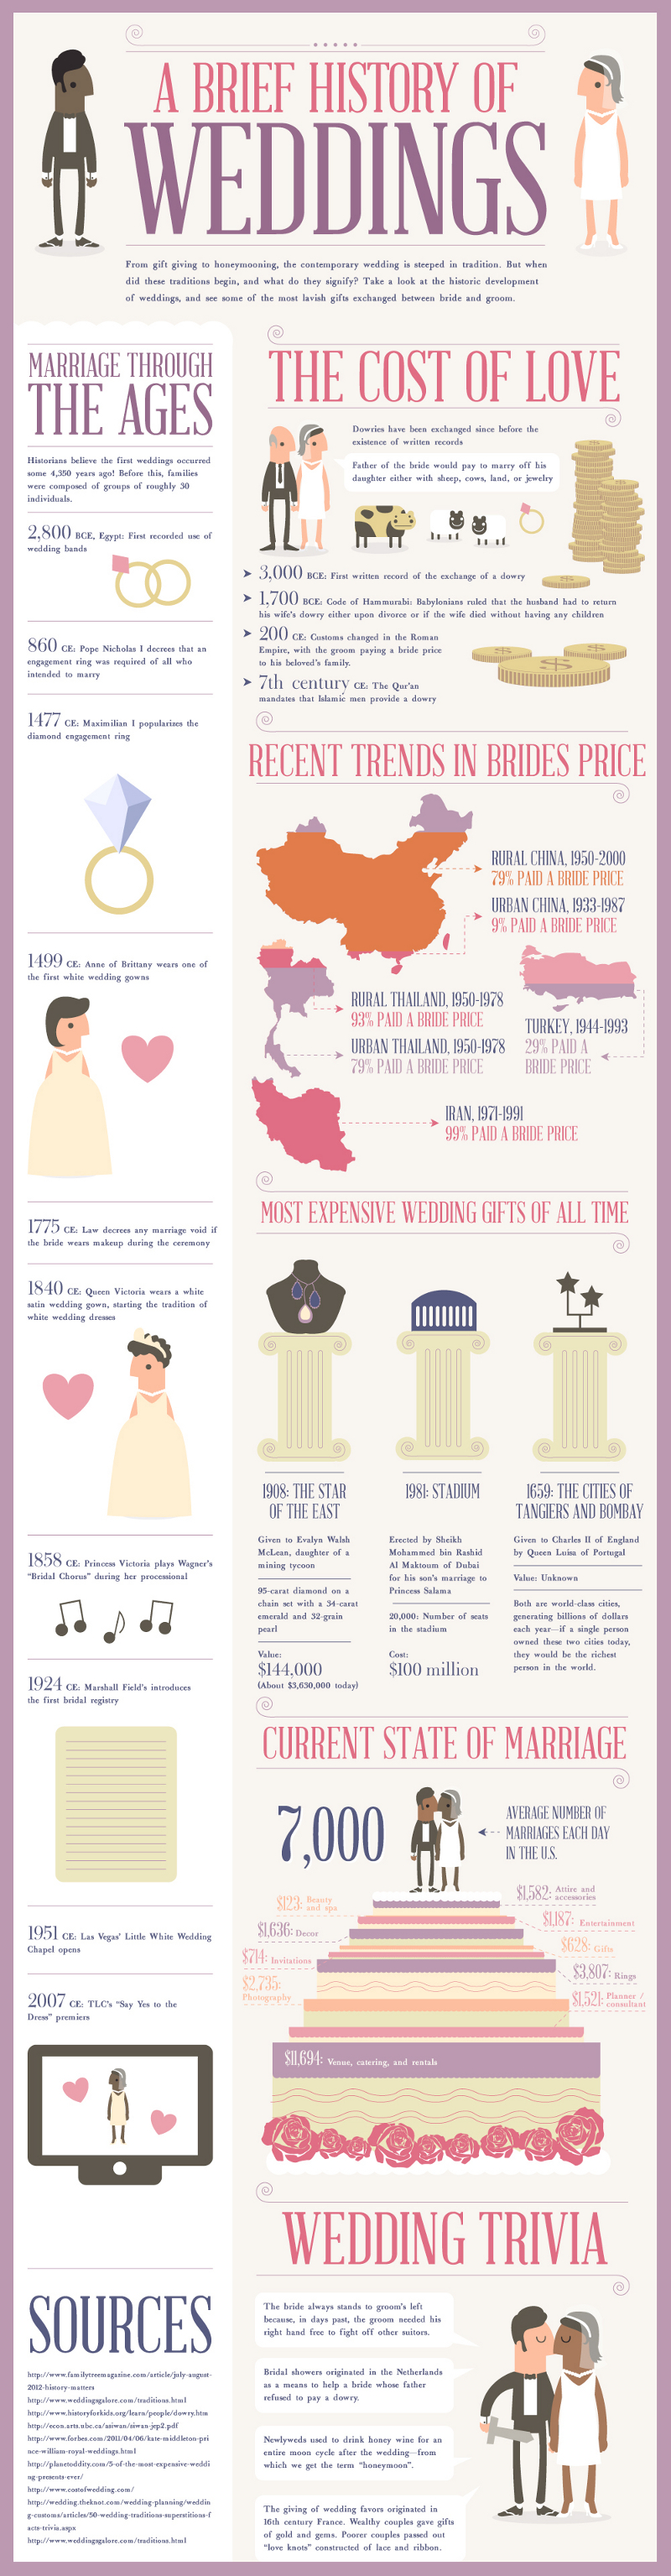 History of Weddings and Timeline